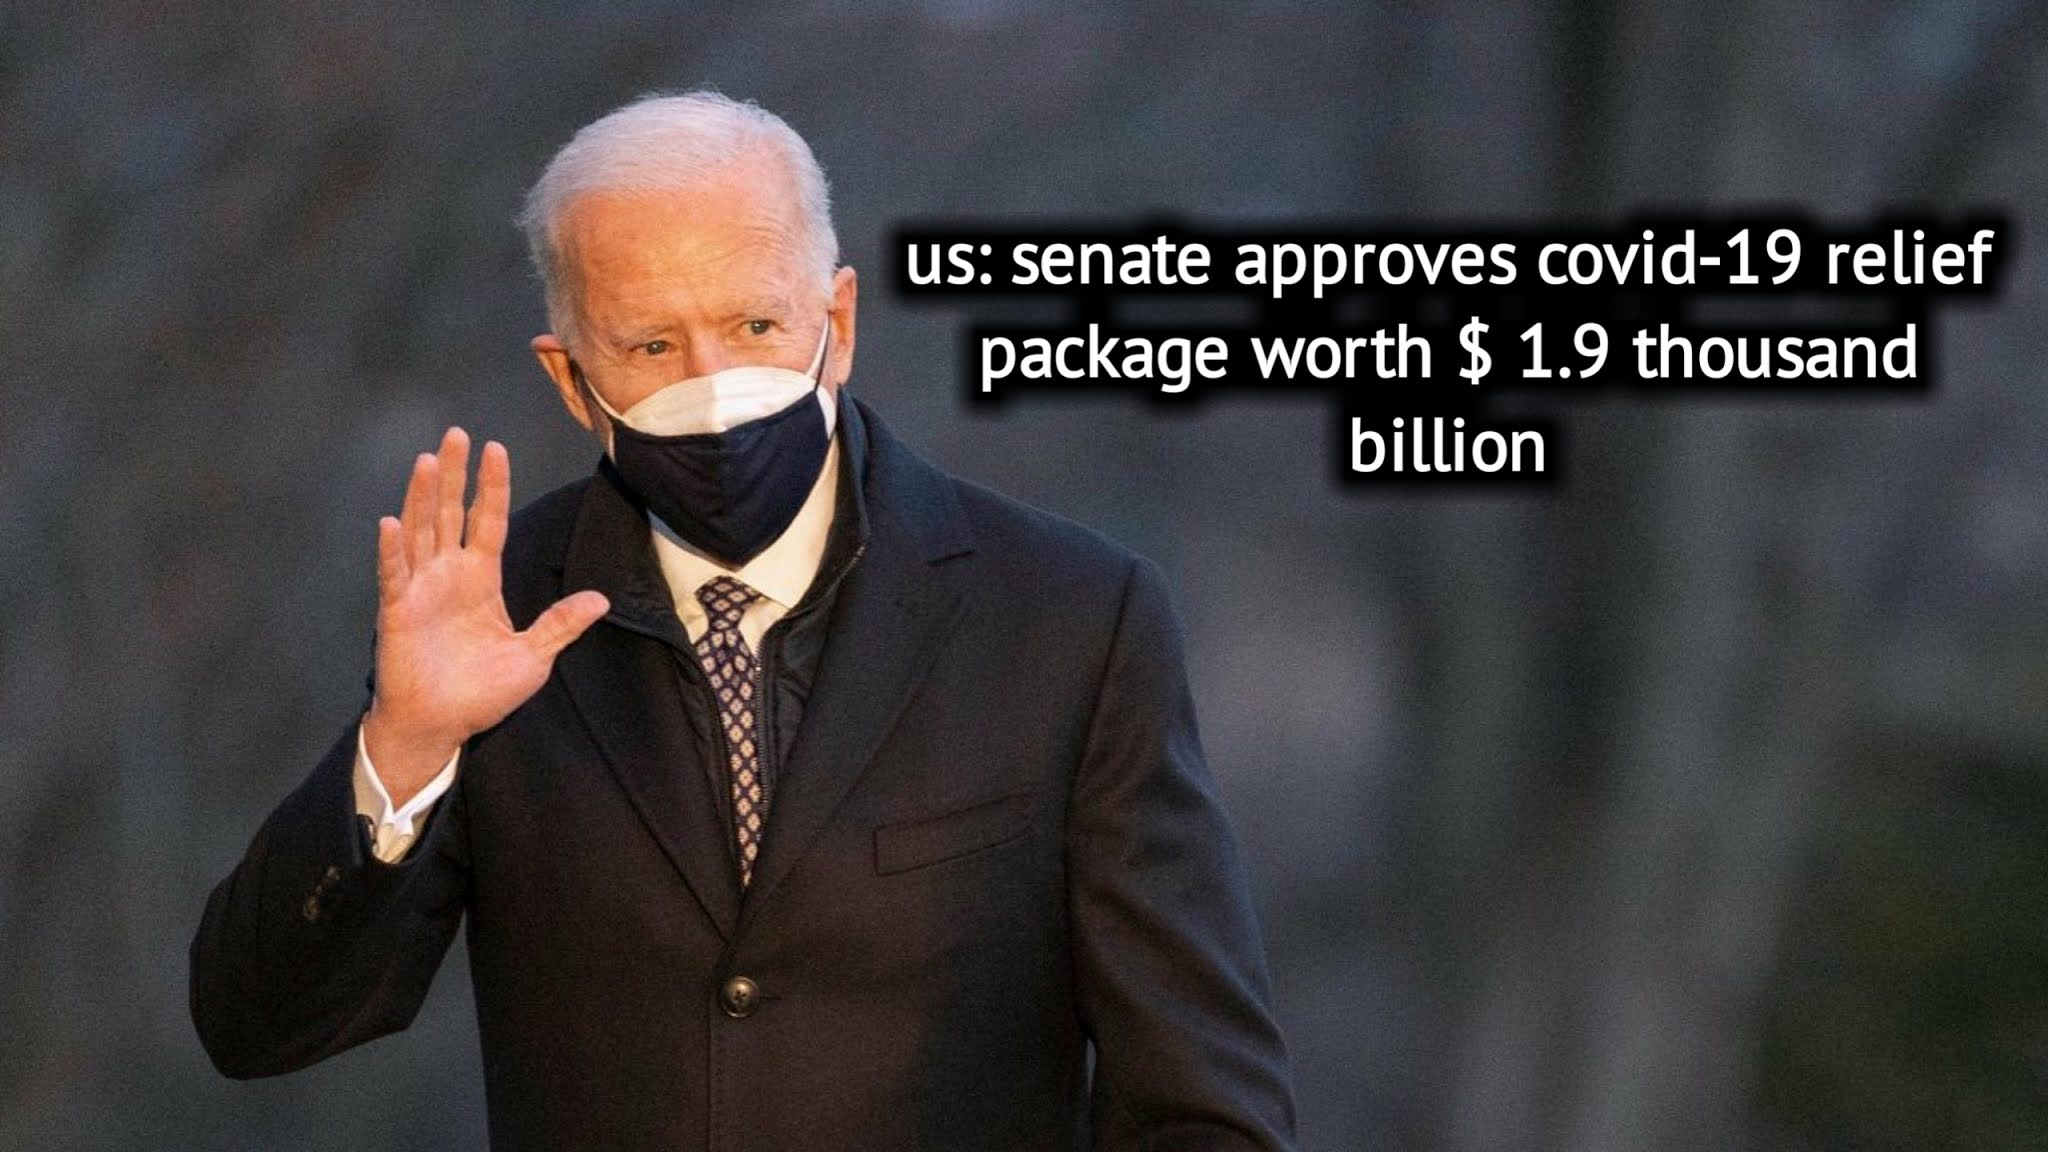 United States: The Senate Approves $ 1.9 Billion Covid-19 Relief Package